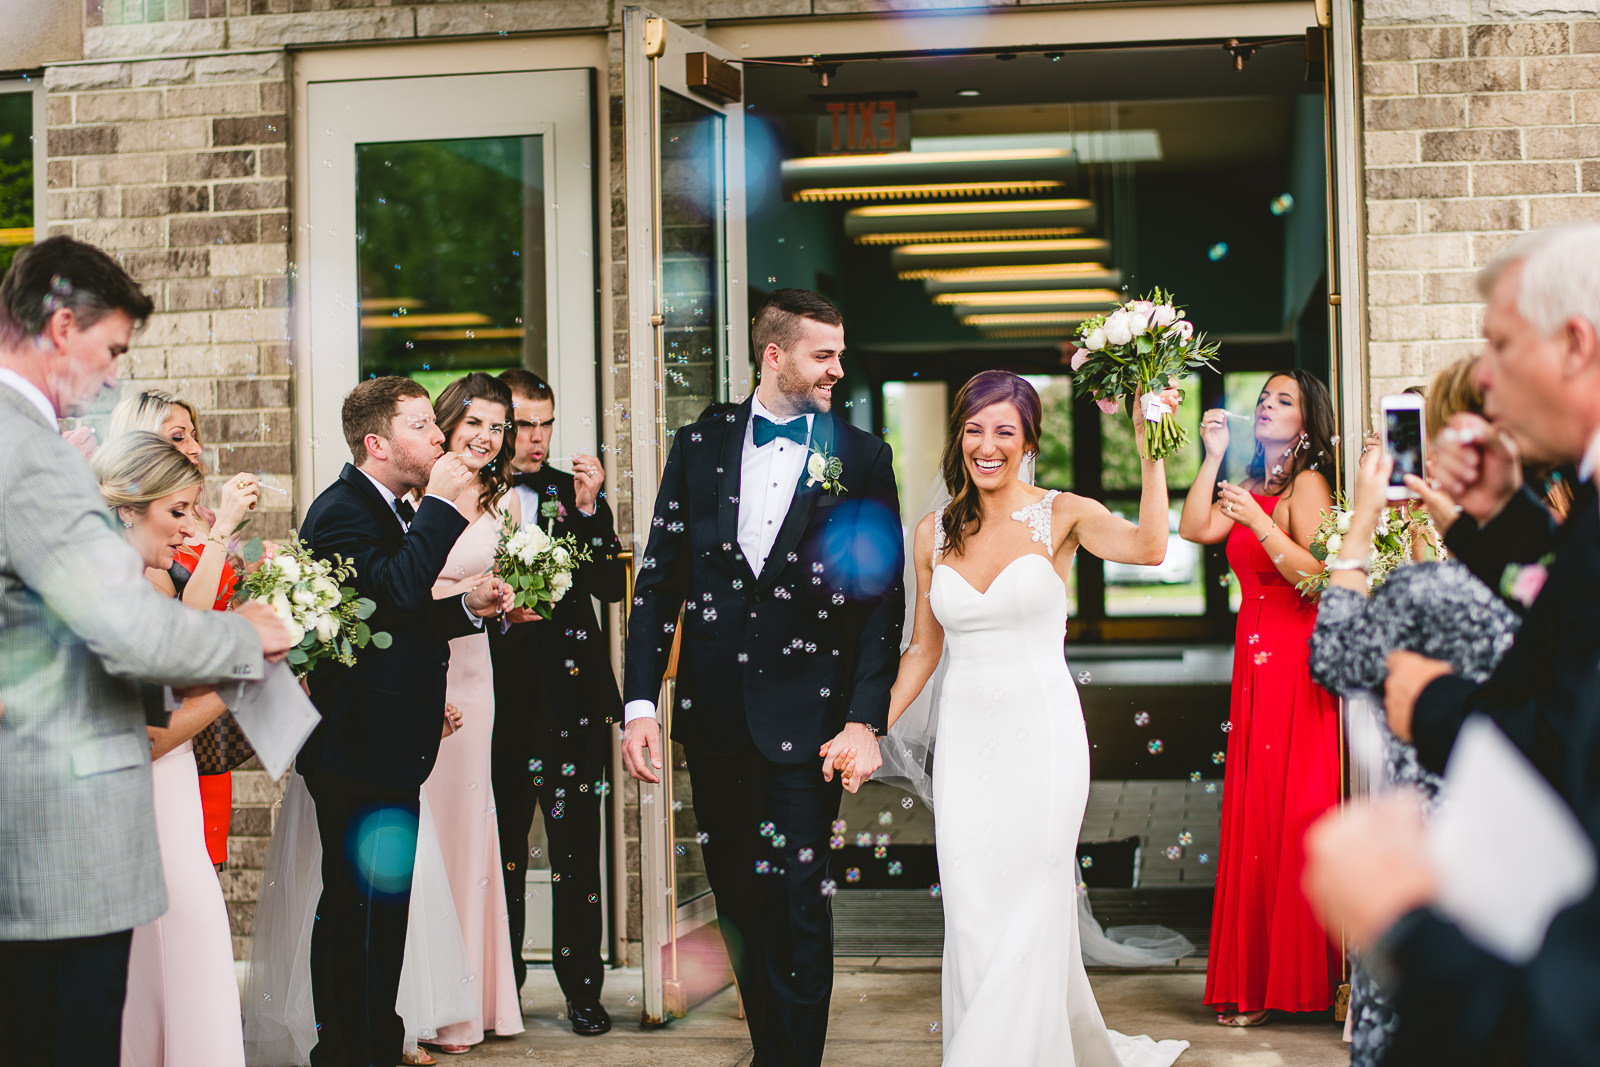 30 bride and groom bubble exit inspiration - Club of Hillbrook Wedding // Jenna + Ben